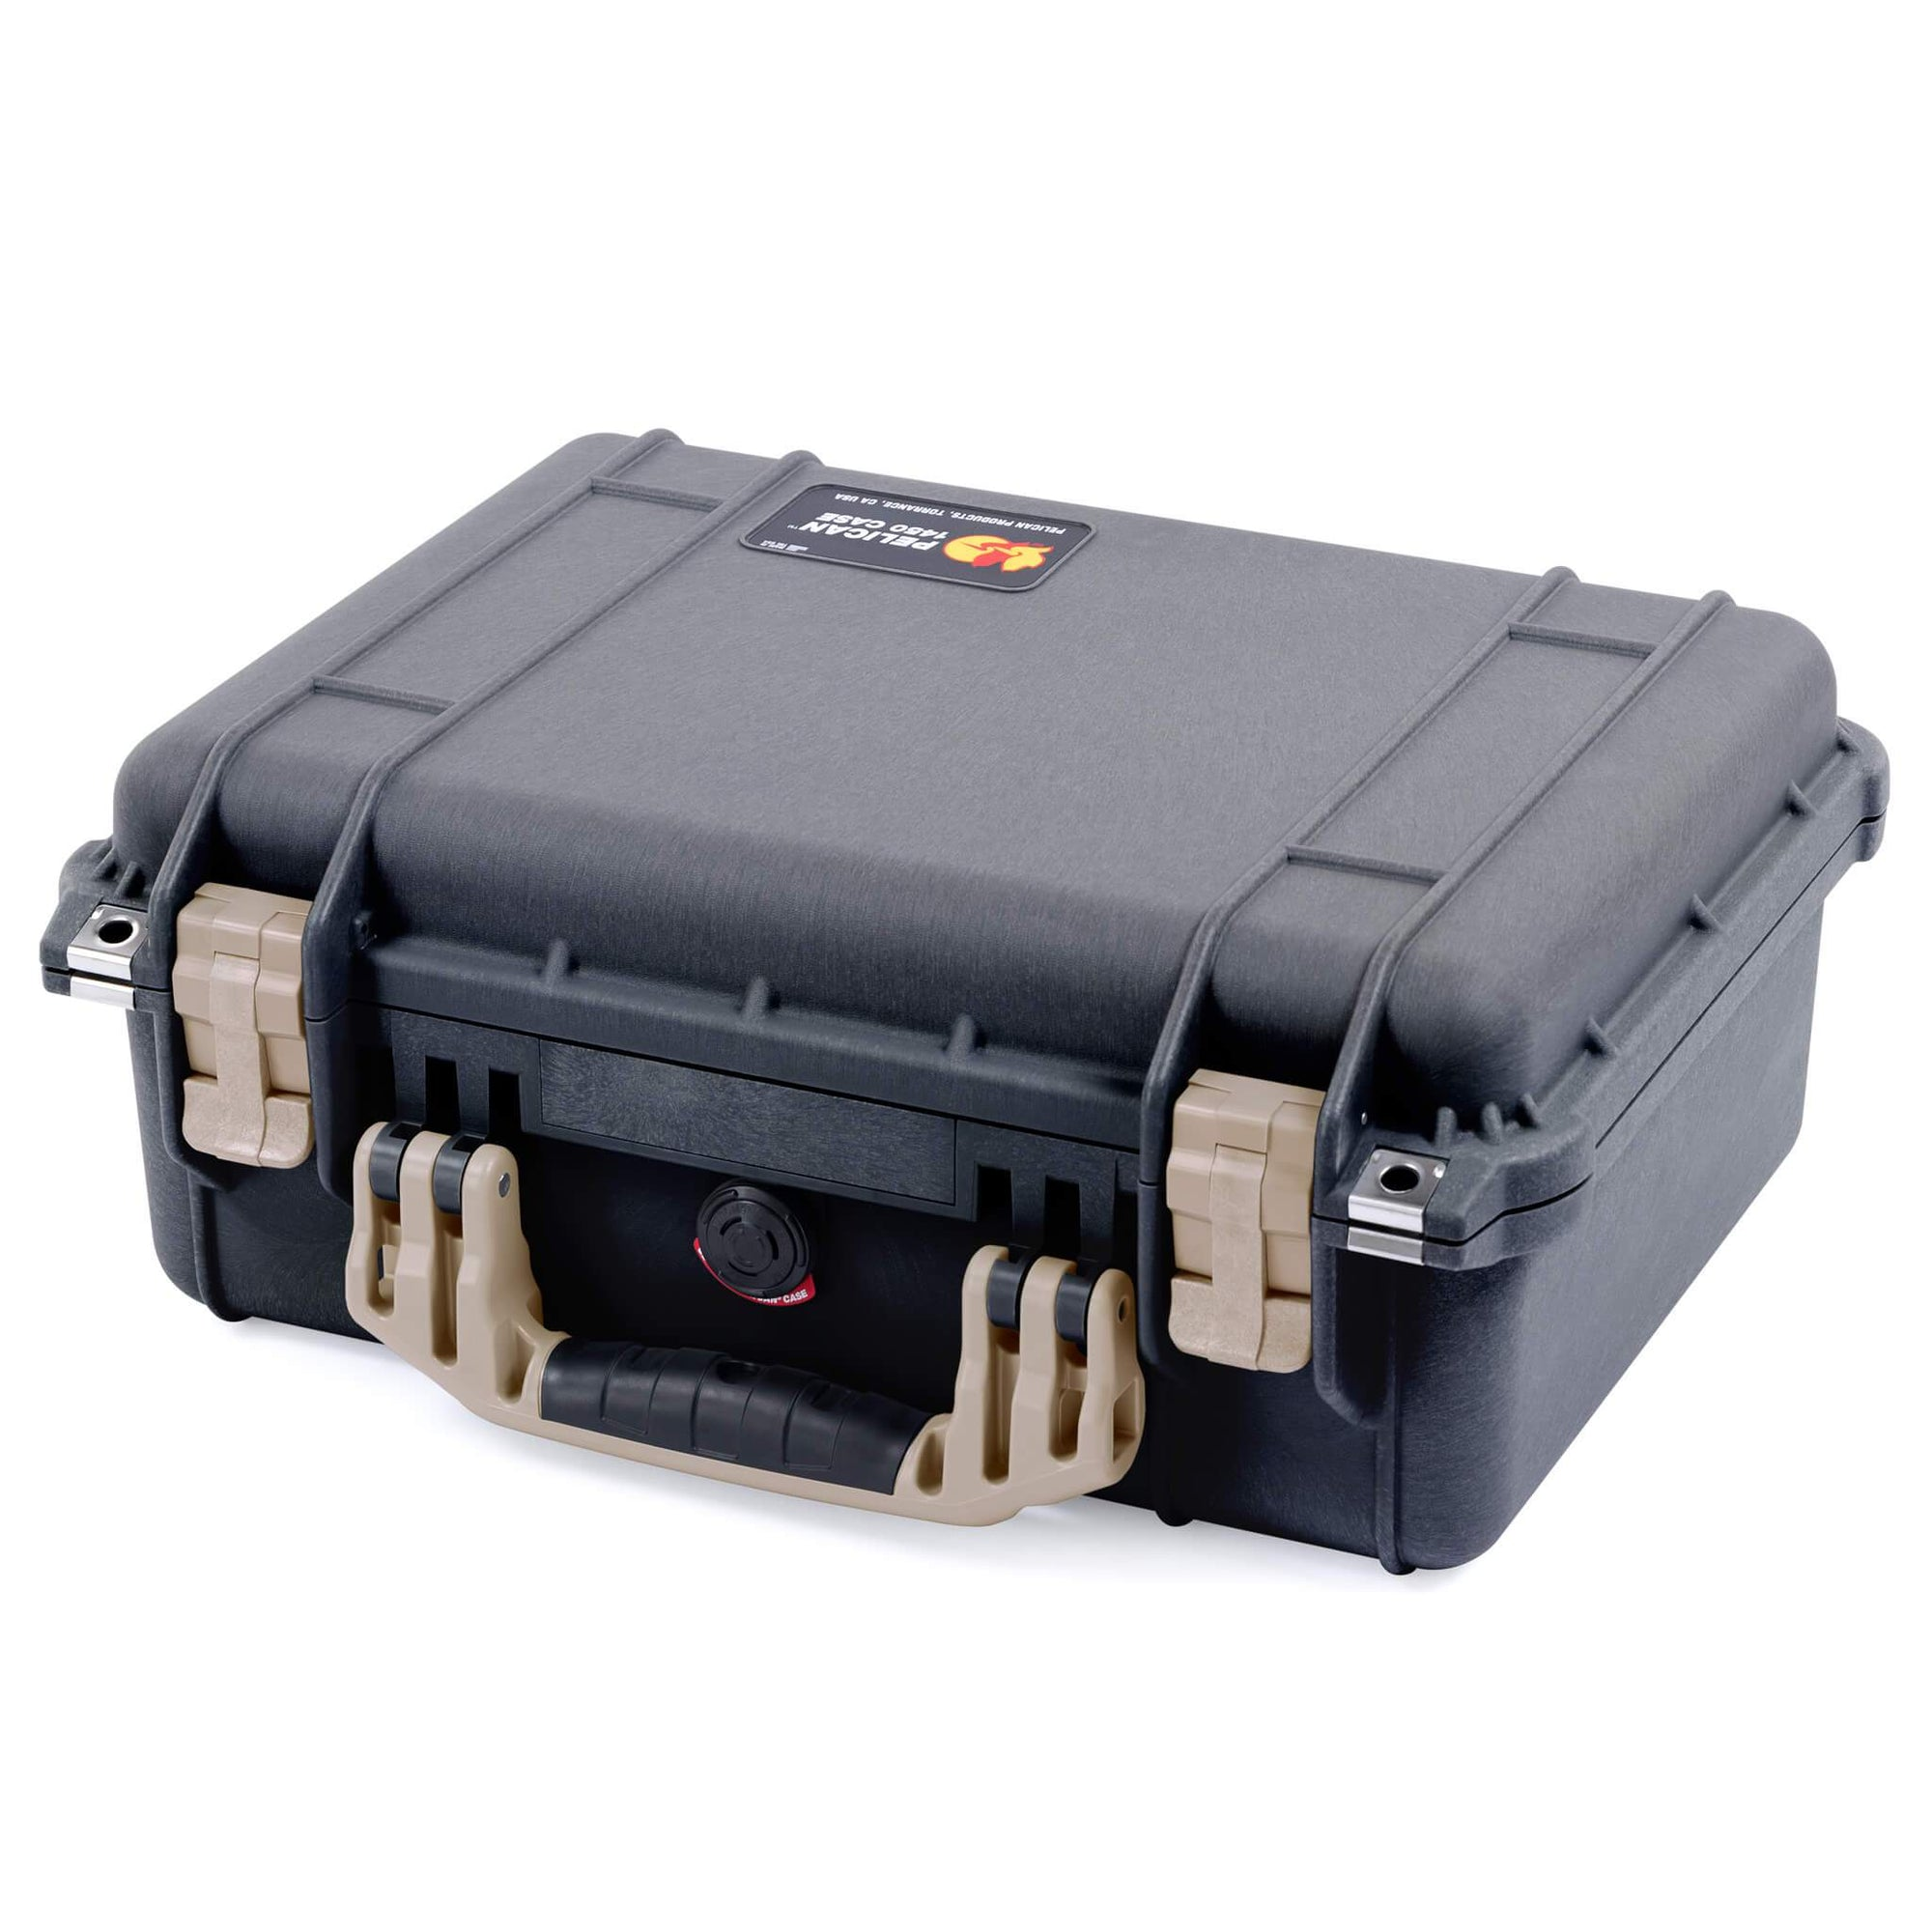 Pelican 1450 Case, Black with Desert Tan Handle & Latches - Pelican Color Case